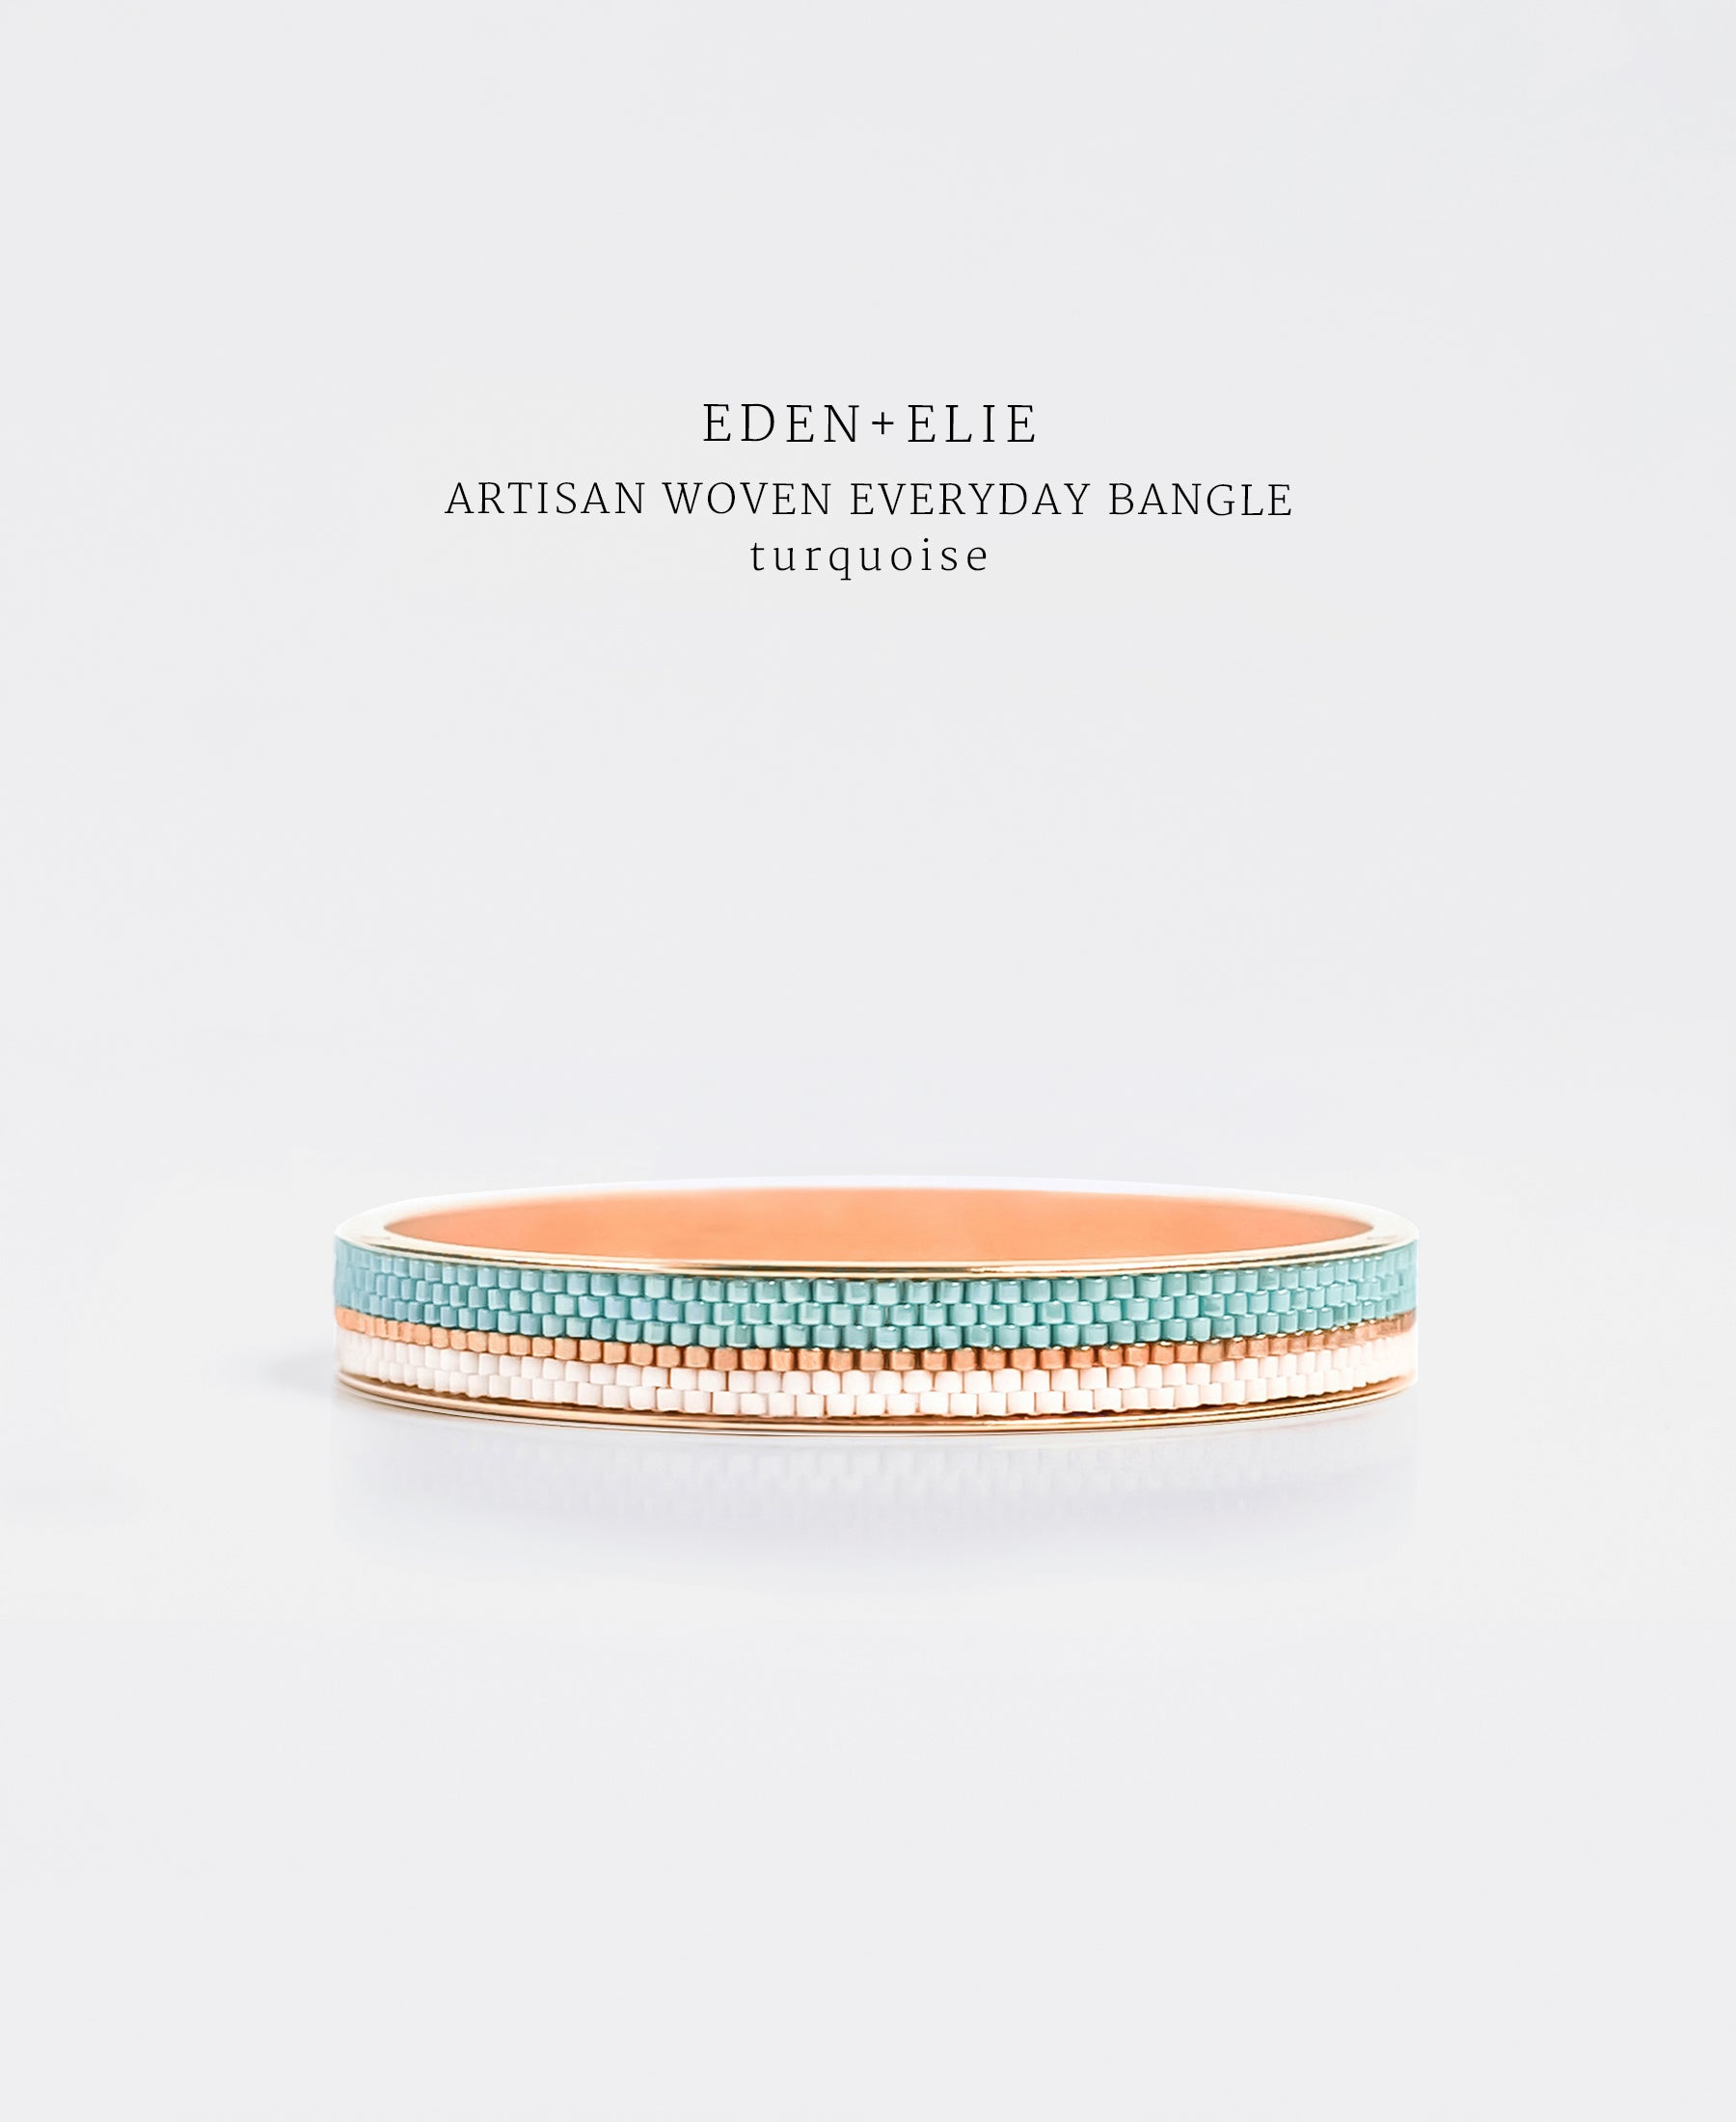 EDEN + ELIE Everyday gold narrow bangle - turquoise